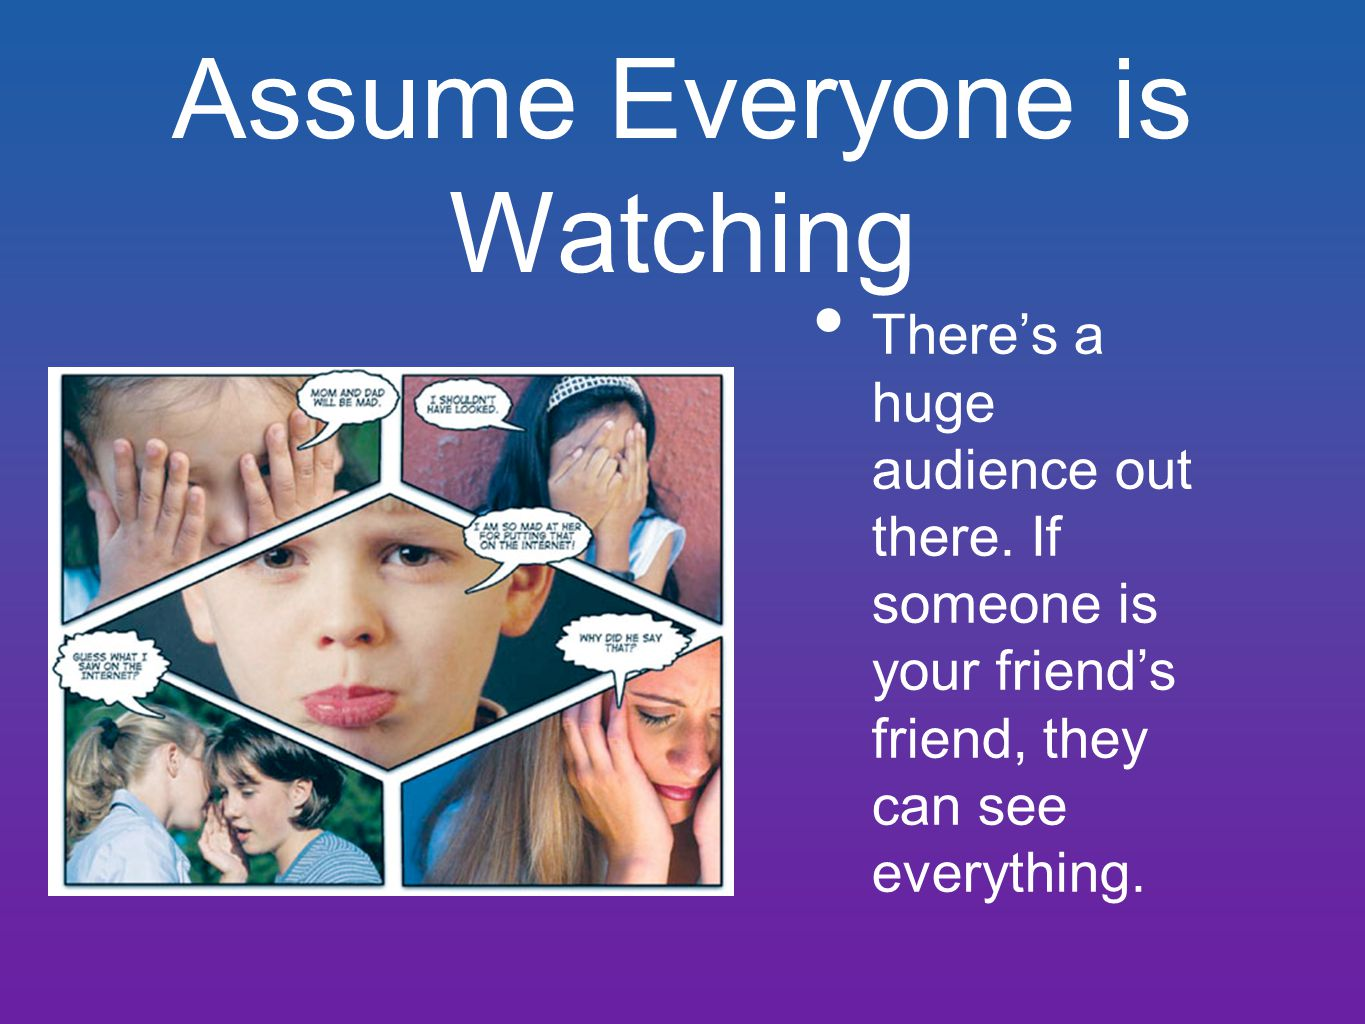 Assume Everyone is Watching There's a huge audience out there.